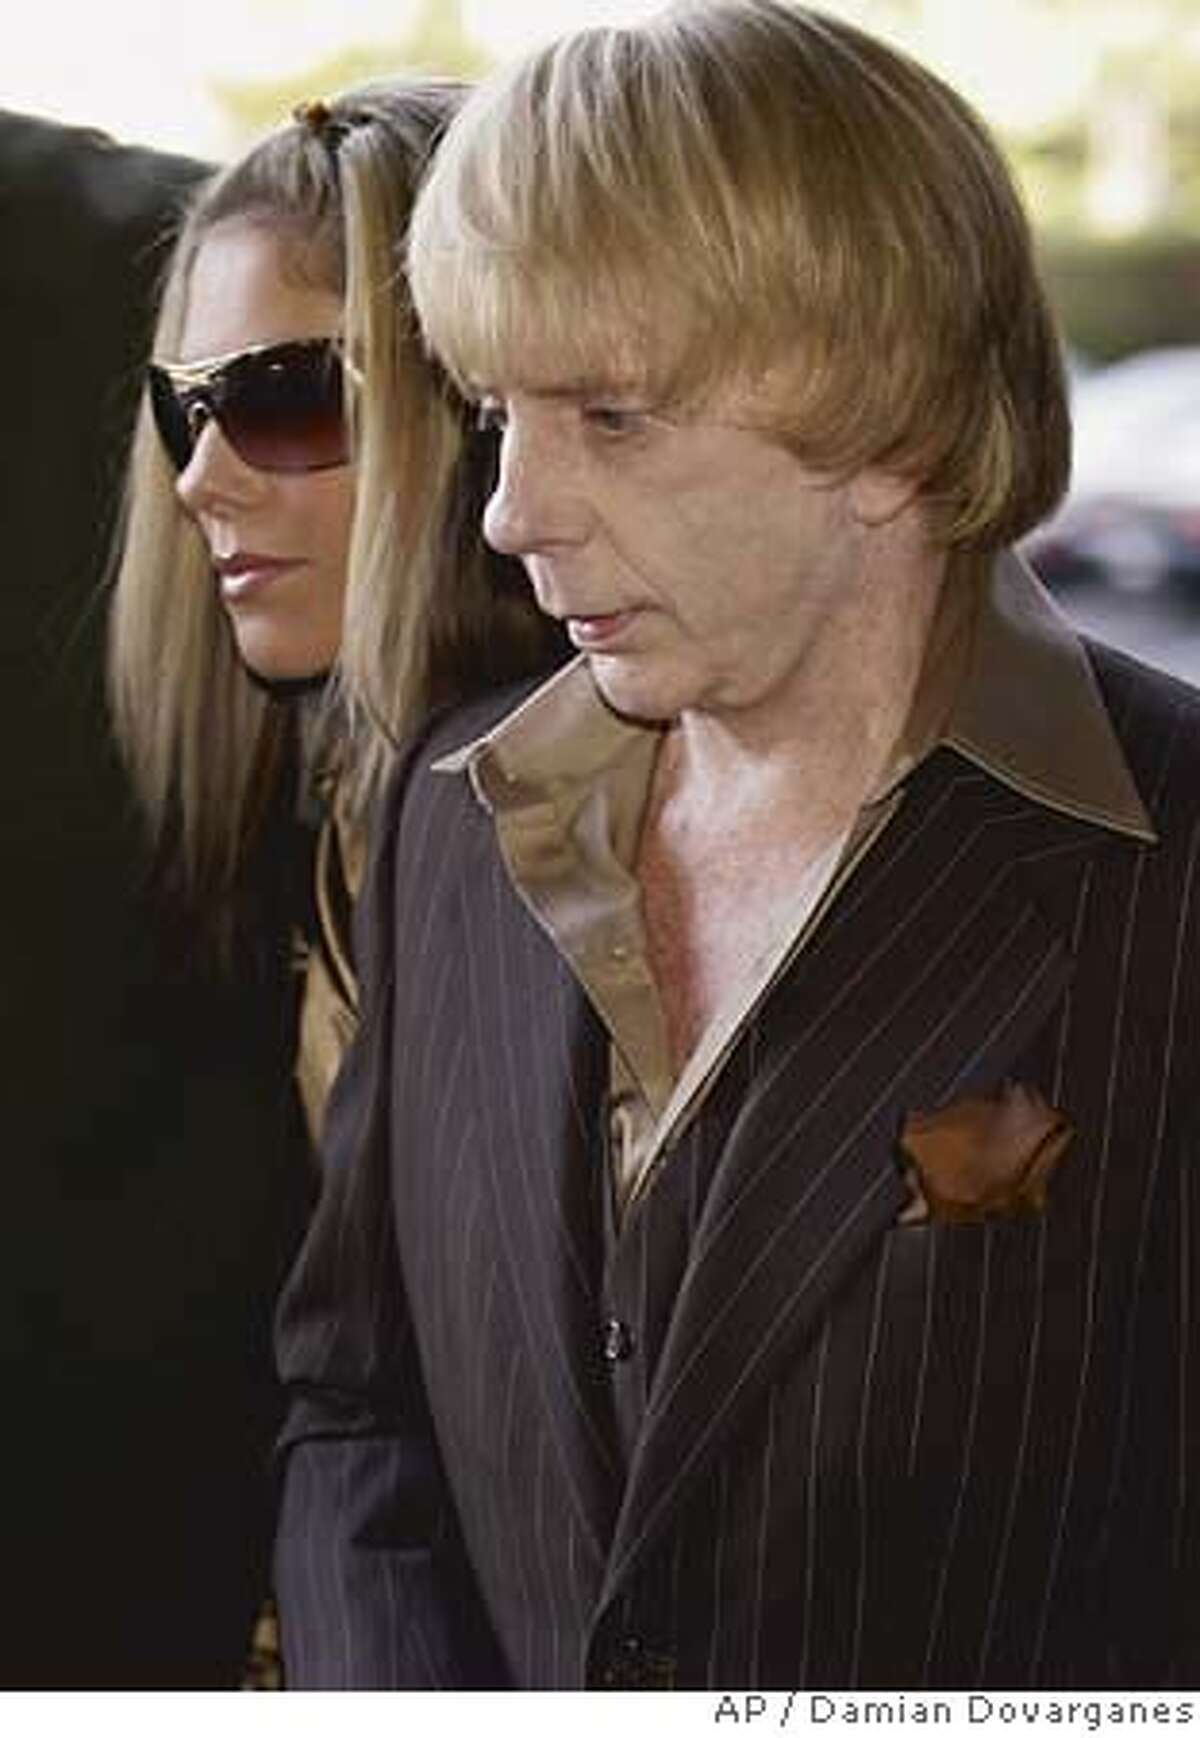 Music producer Phil Spector, right, arrives with his wife Rachelle Spector, at Los Angeles Superior Court, Tuesday April 24, 2007 in Los Angeles, during jury selection proceeding in his murder trial. (AP Photo/Damian Dovarganes)